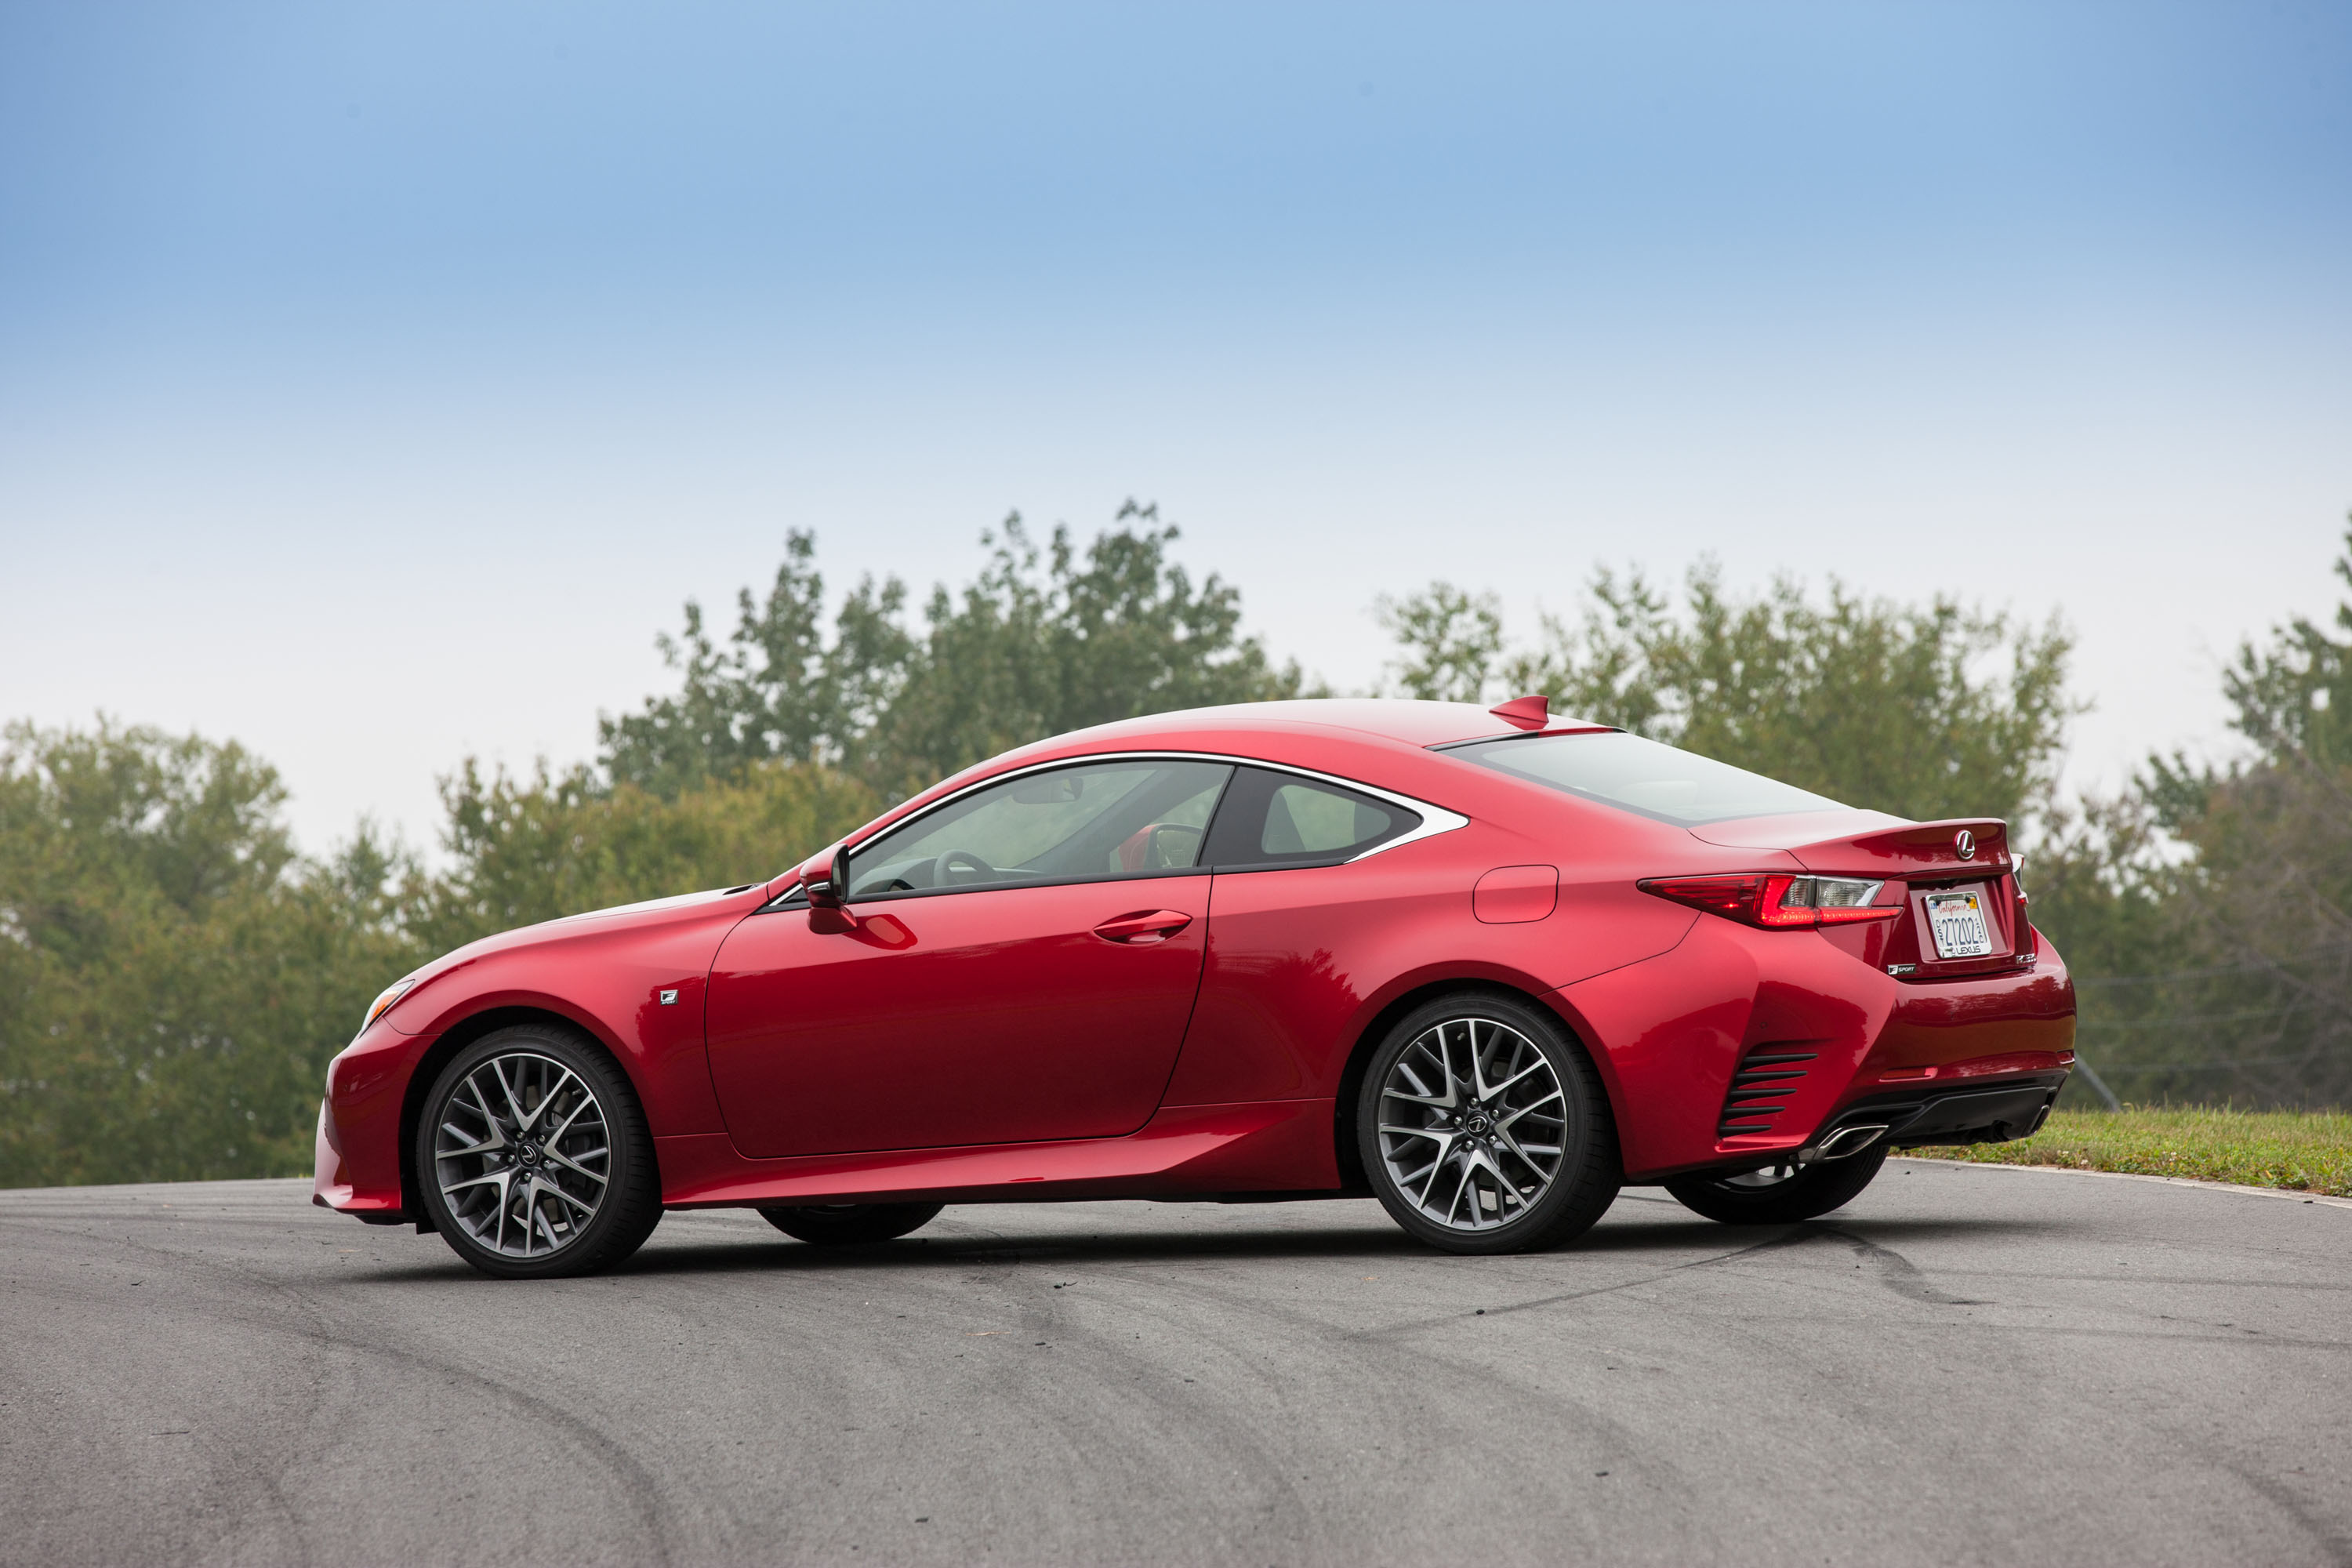 2017 Lexus RC 350 F Sport Coupe Now This Is Luxury Performance